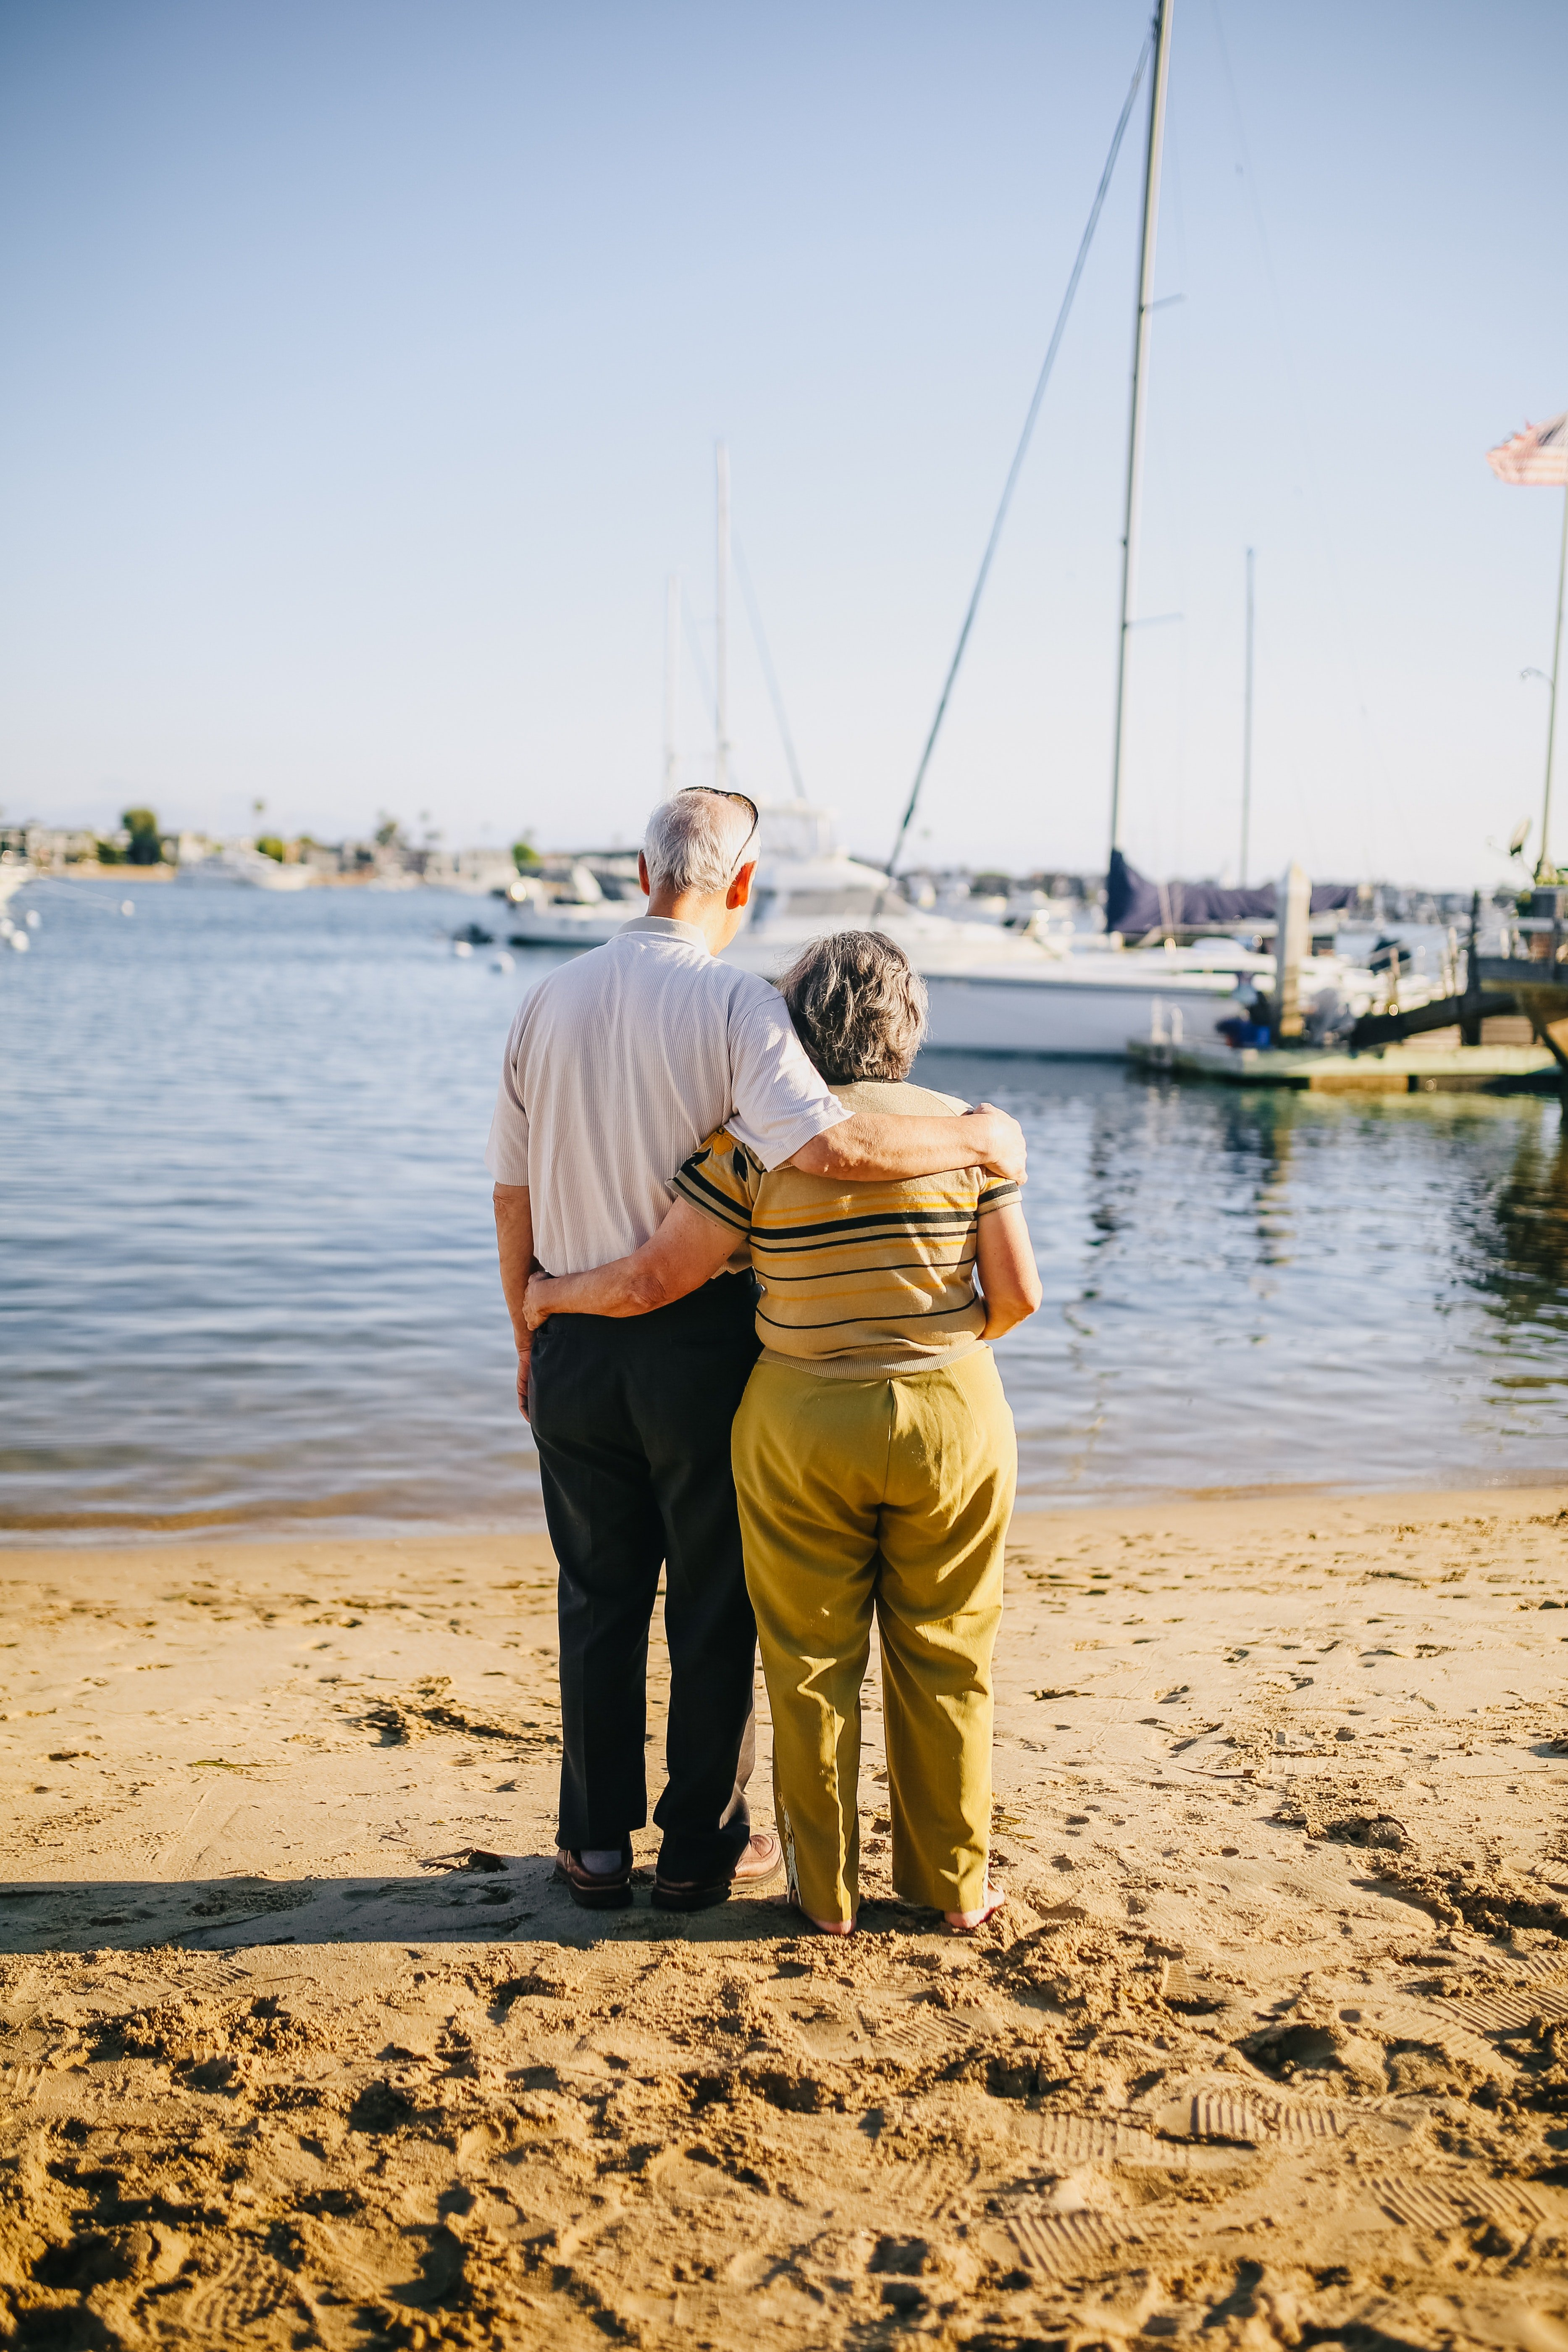 An elderly couple looking at the boats in the water. | Source: Pexels.